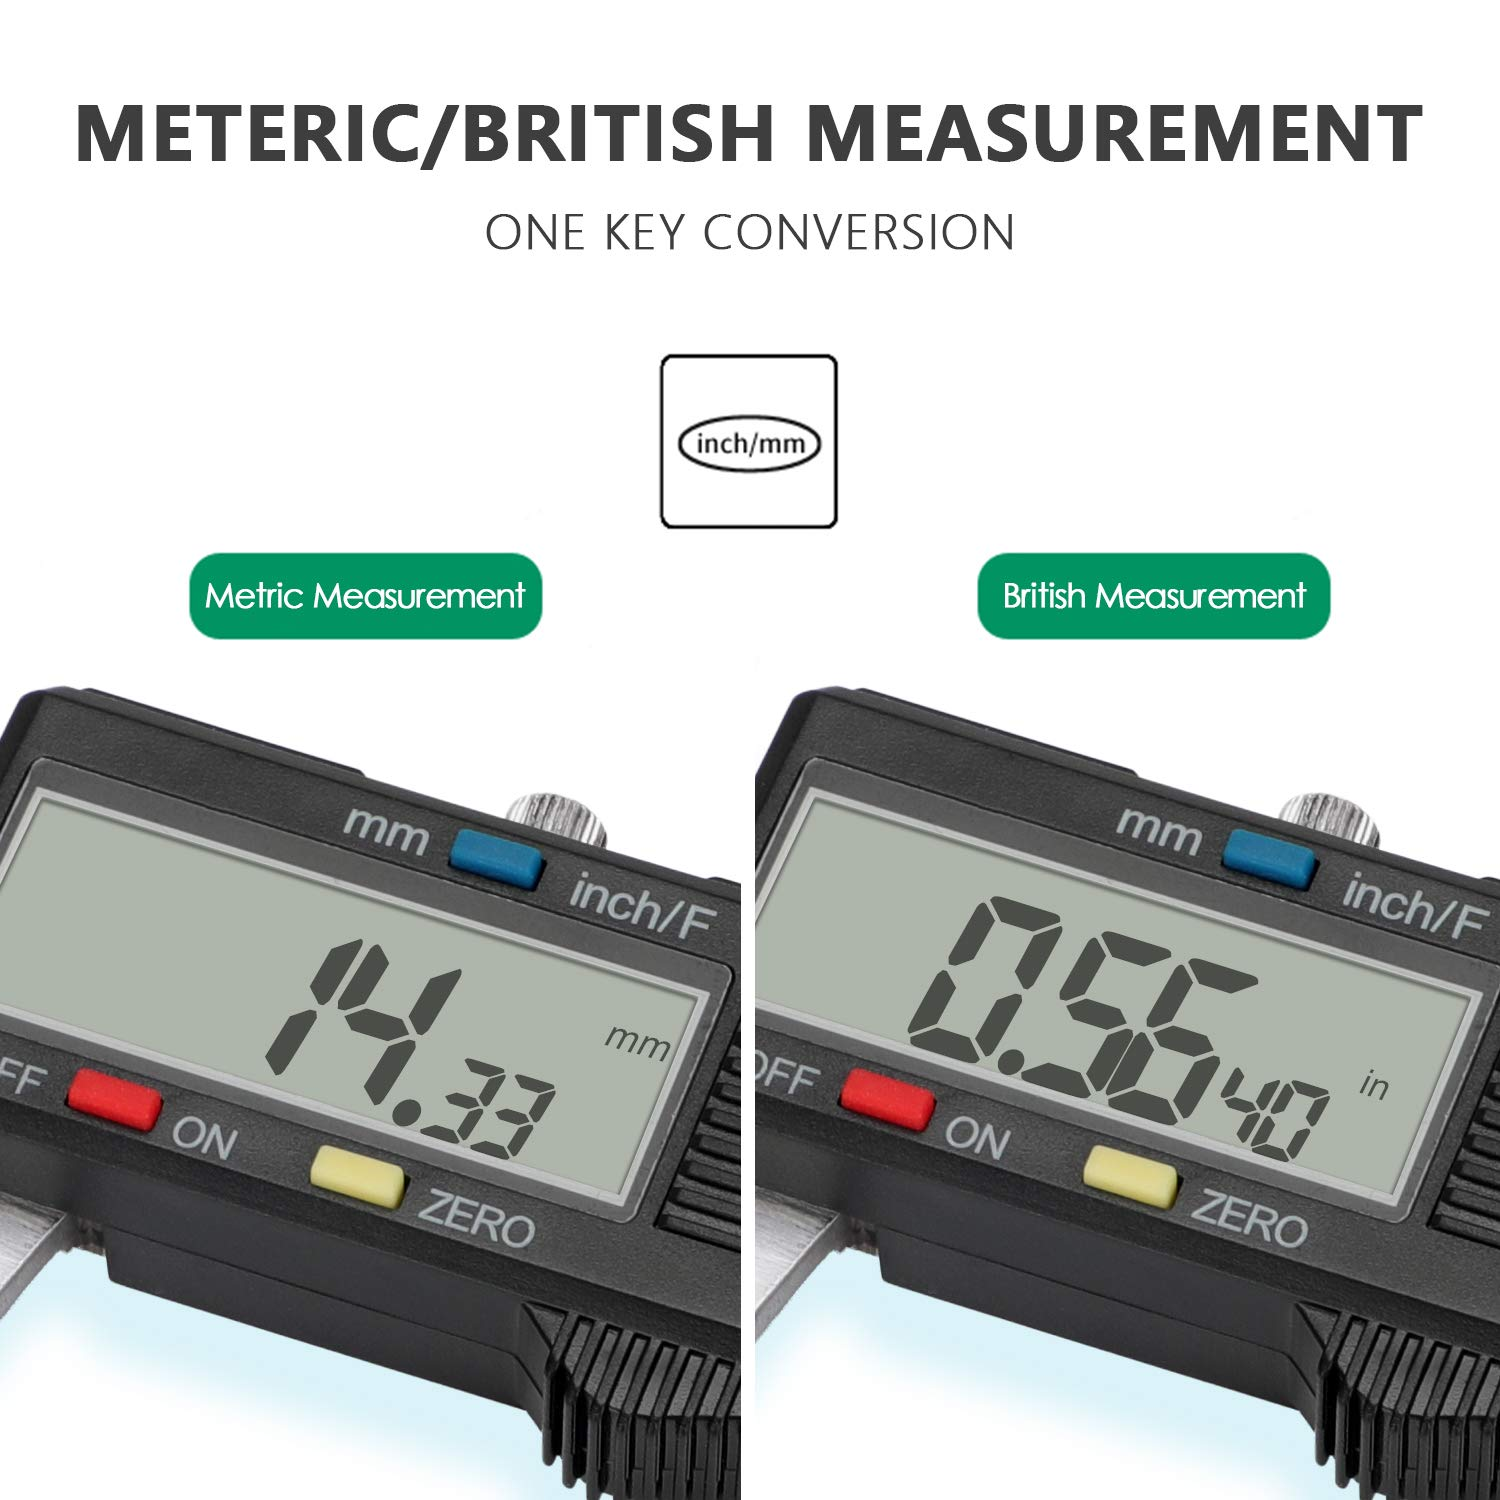 Digital Caliper Inch and Millimeter Conversion Measuring Tool Perfect for Household//DIY Measurment POWERAXIS 150mm 0-6 inches Vernier Caliper with Large LCD Screen Auto-off Feature